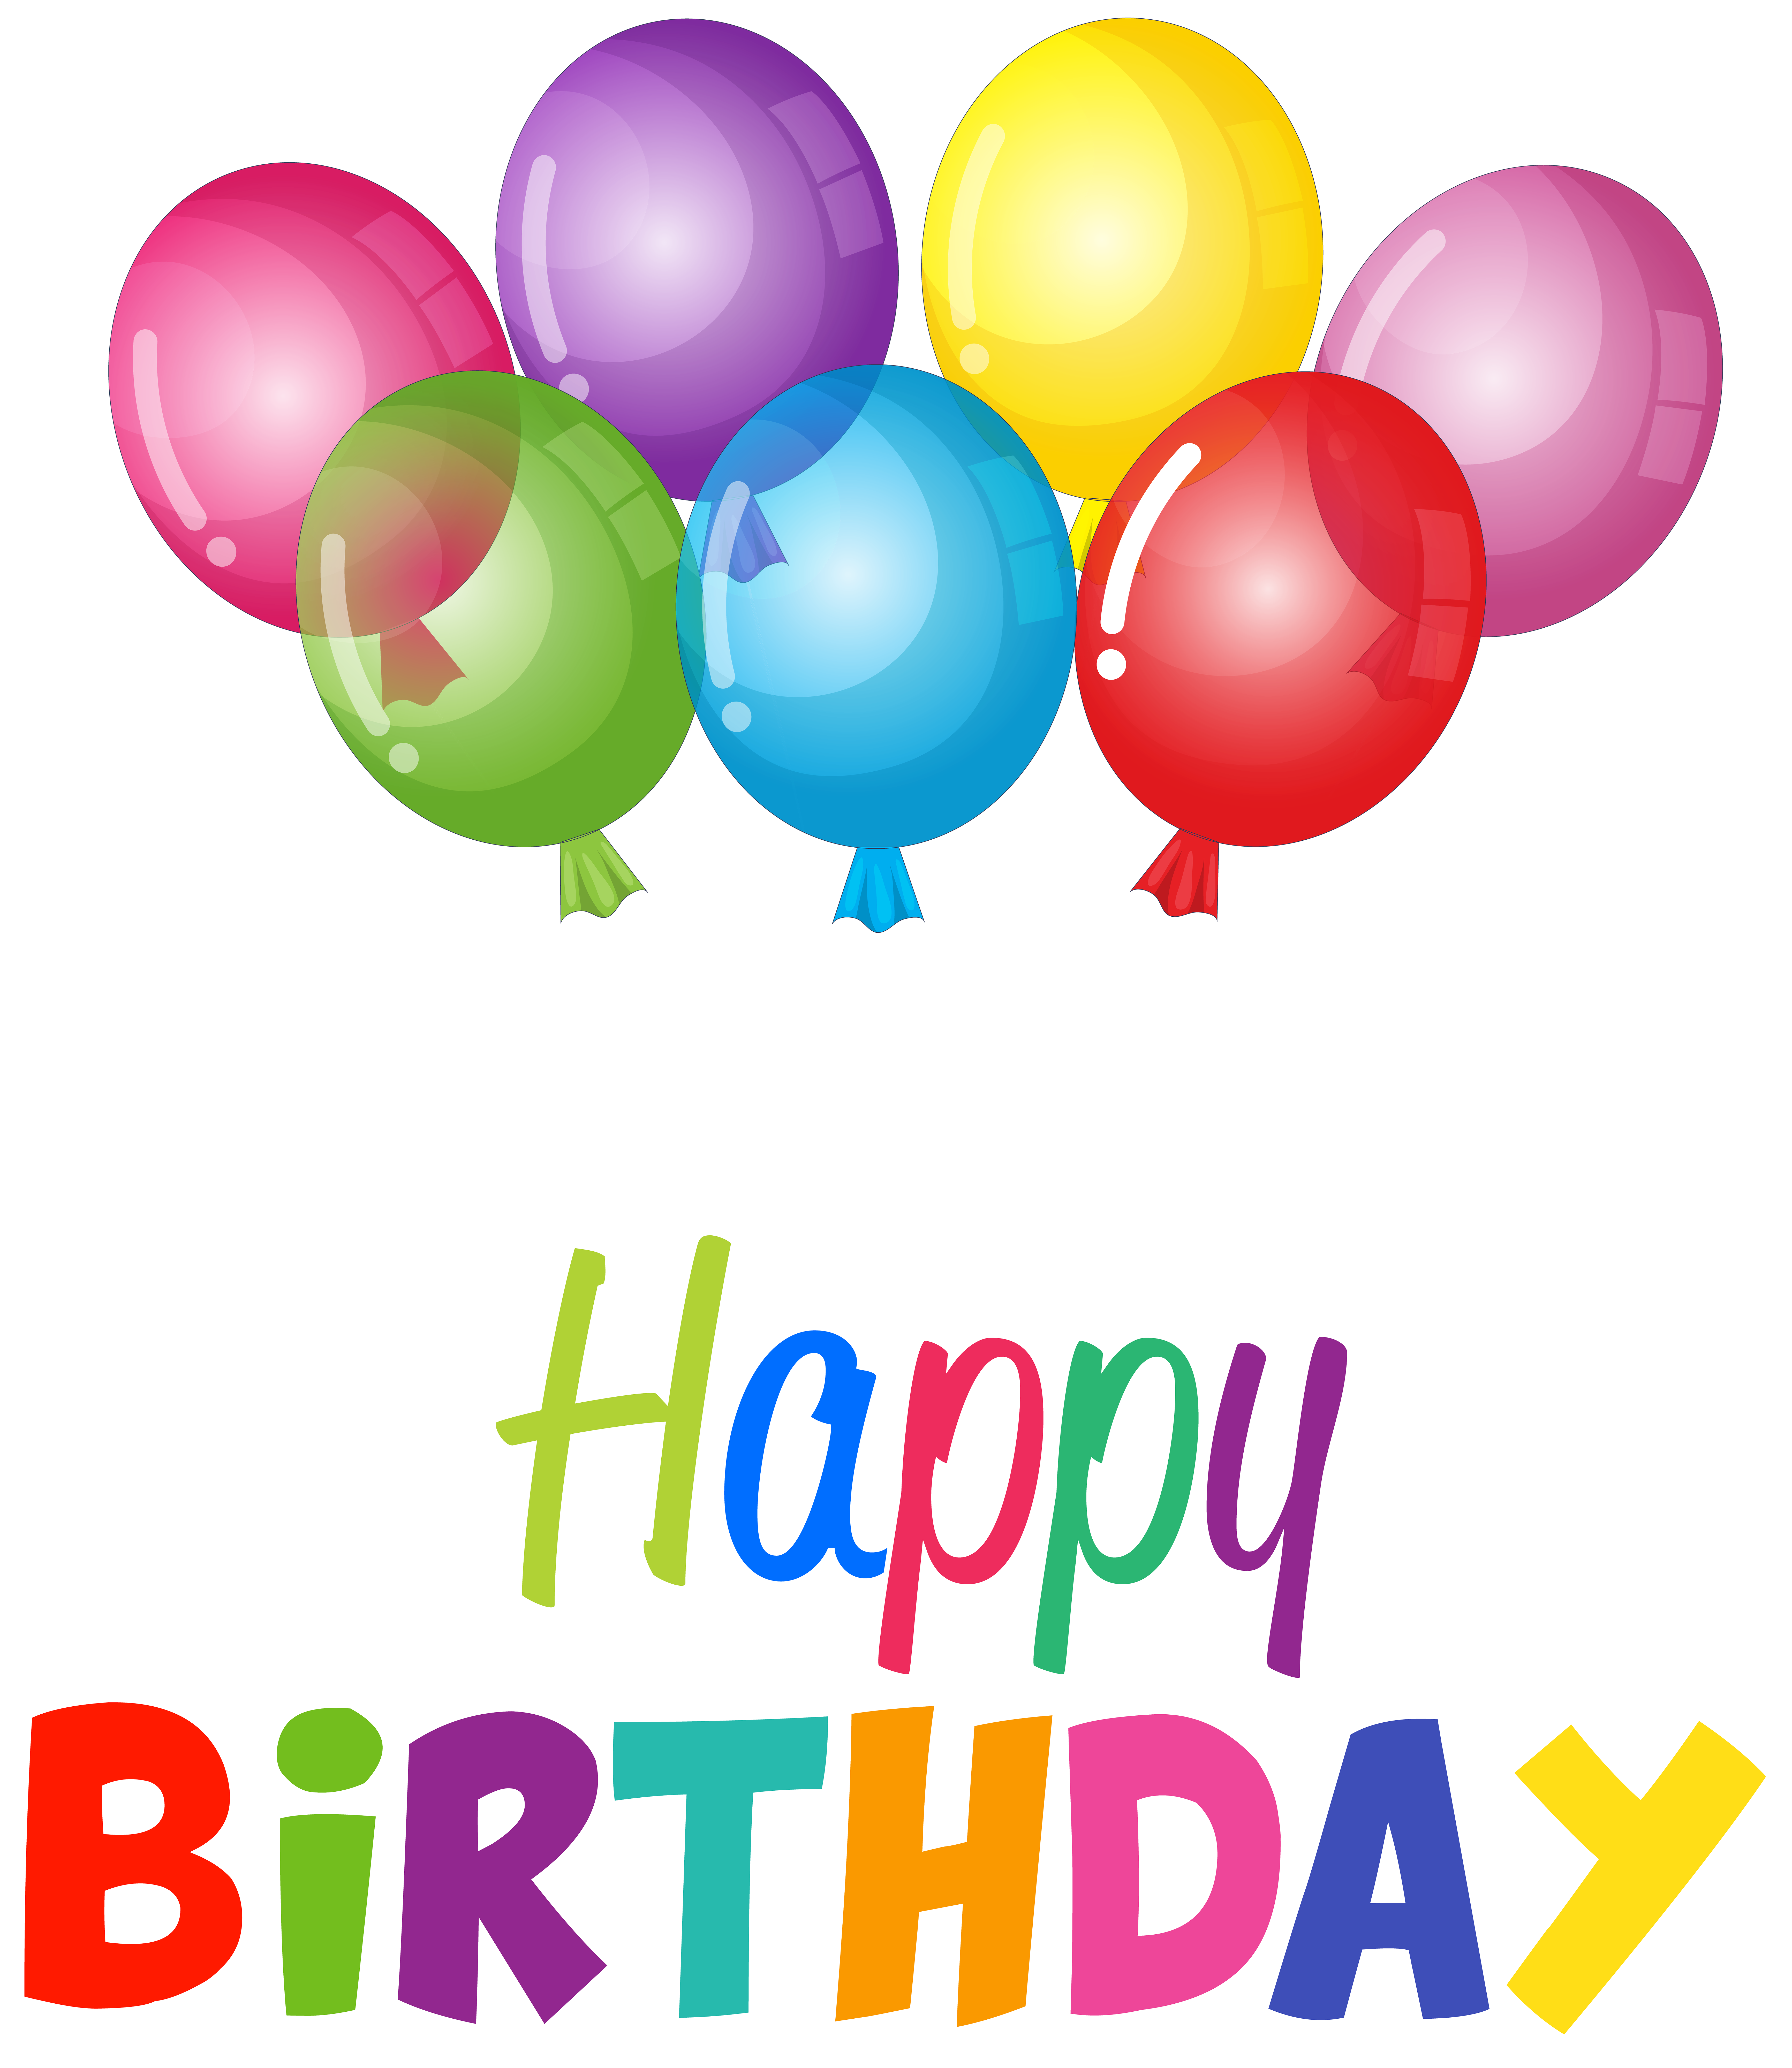 Happy Birthday Balloons Clip Art PNG Image.